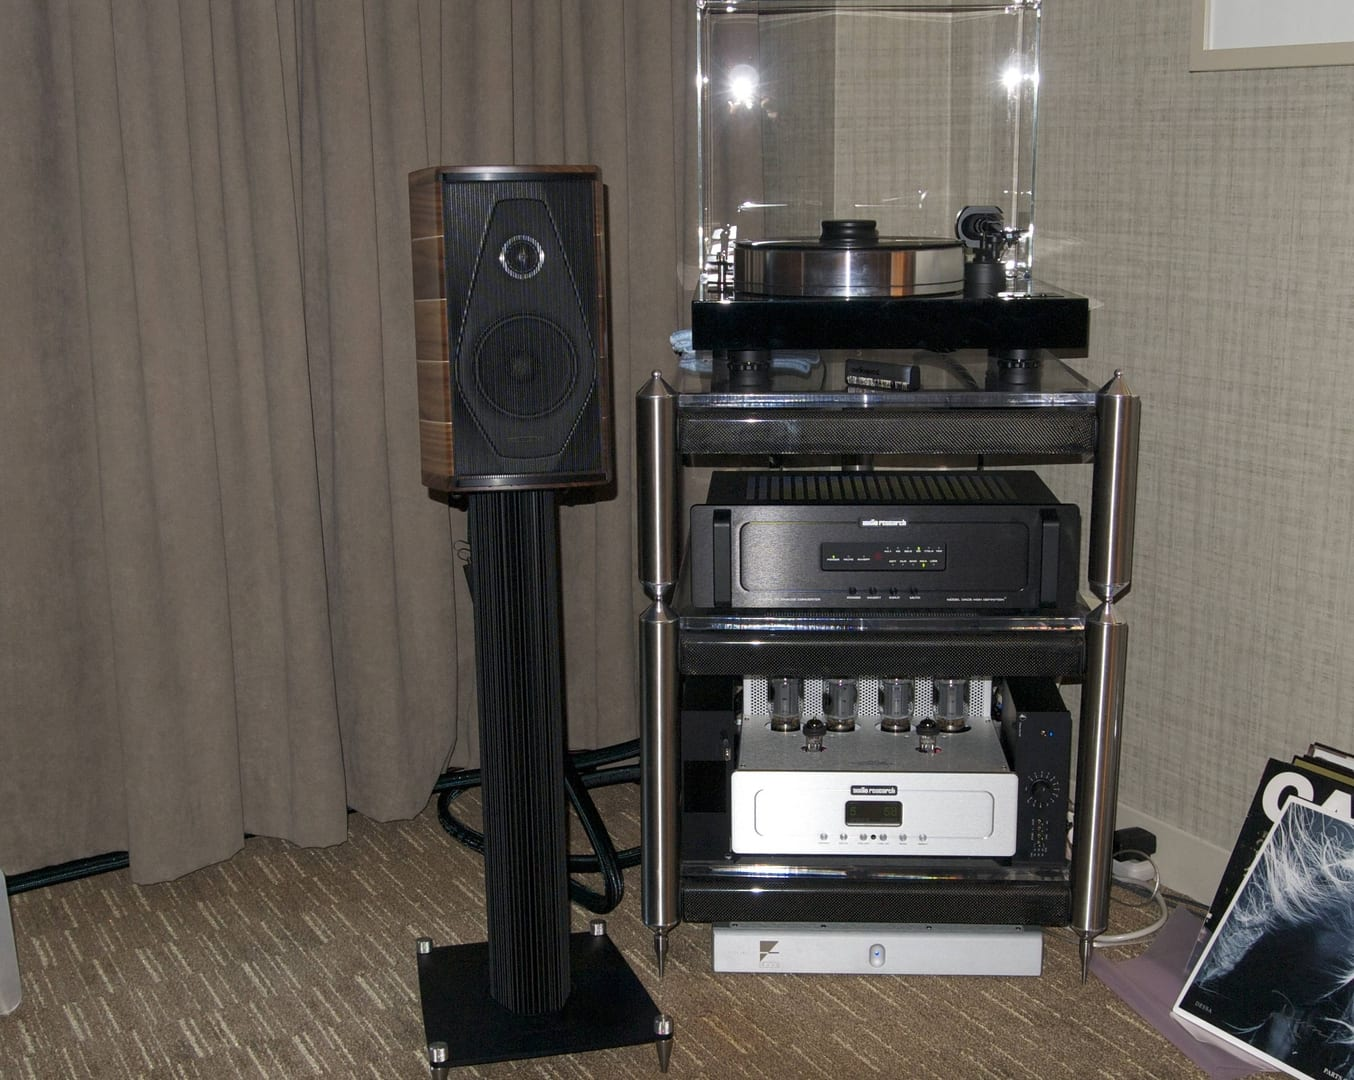 Neil Gader on the California Audio Show: Part Two